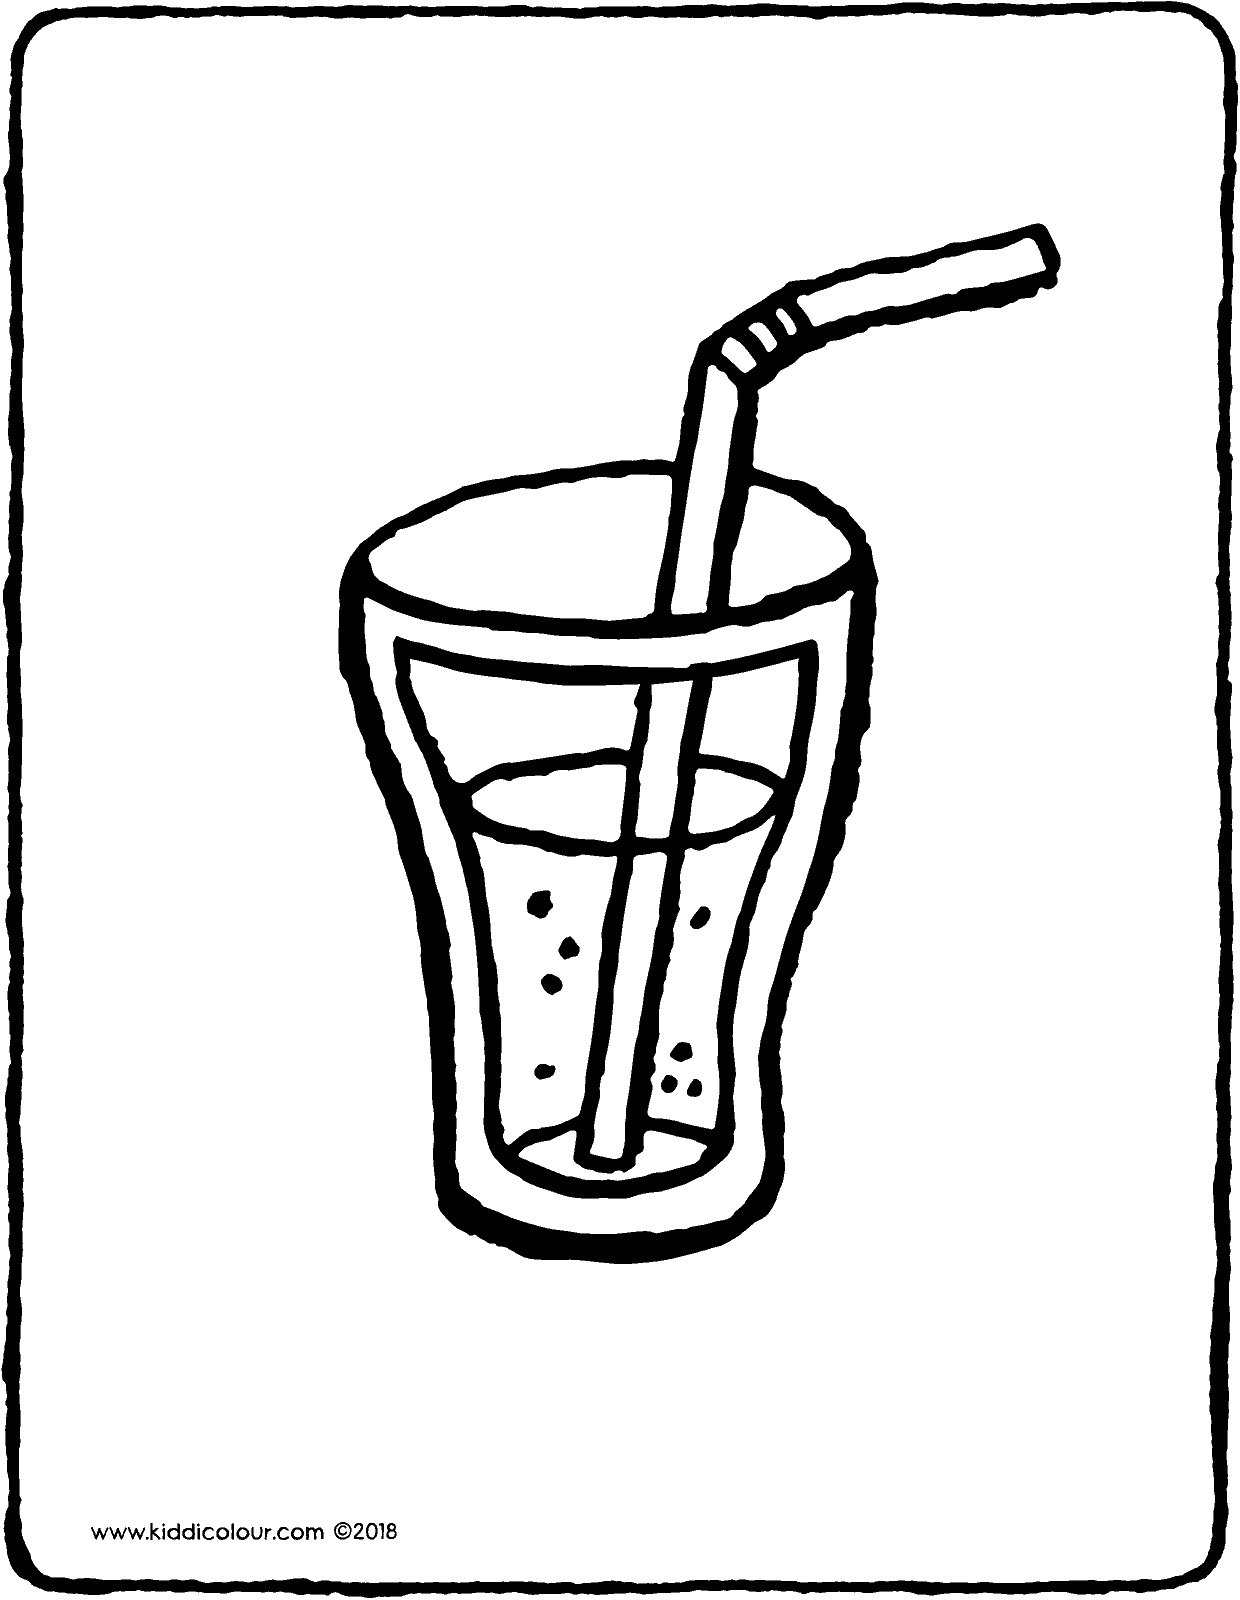 Free Coloring Pages Download Glass Of Lemonade With A Straw Kiddi Kleurprentjes